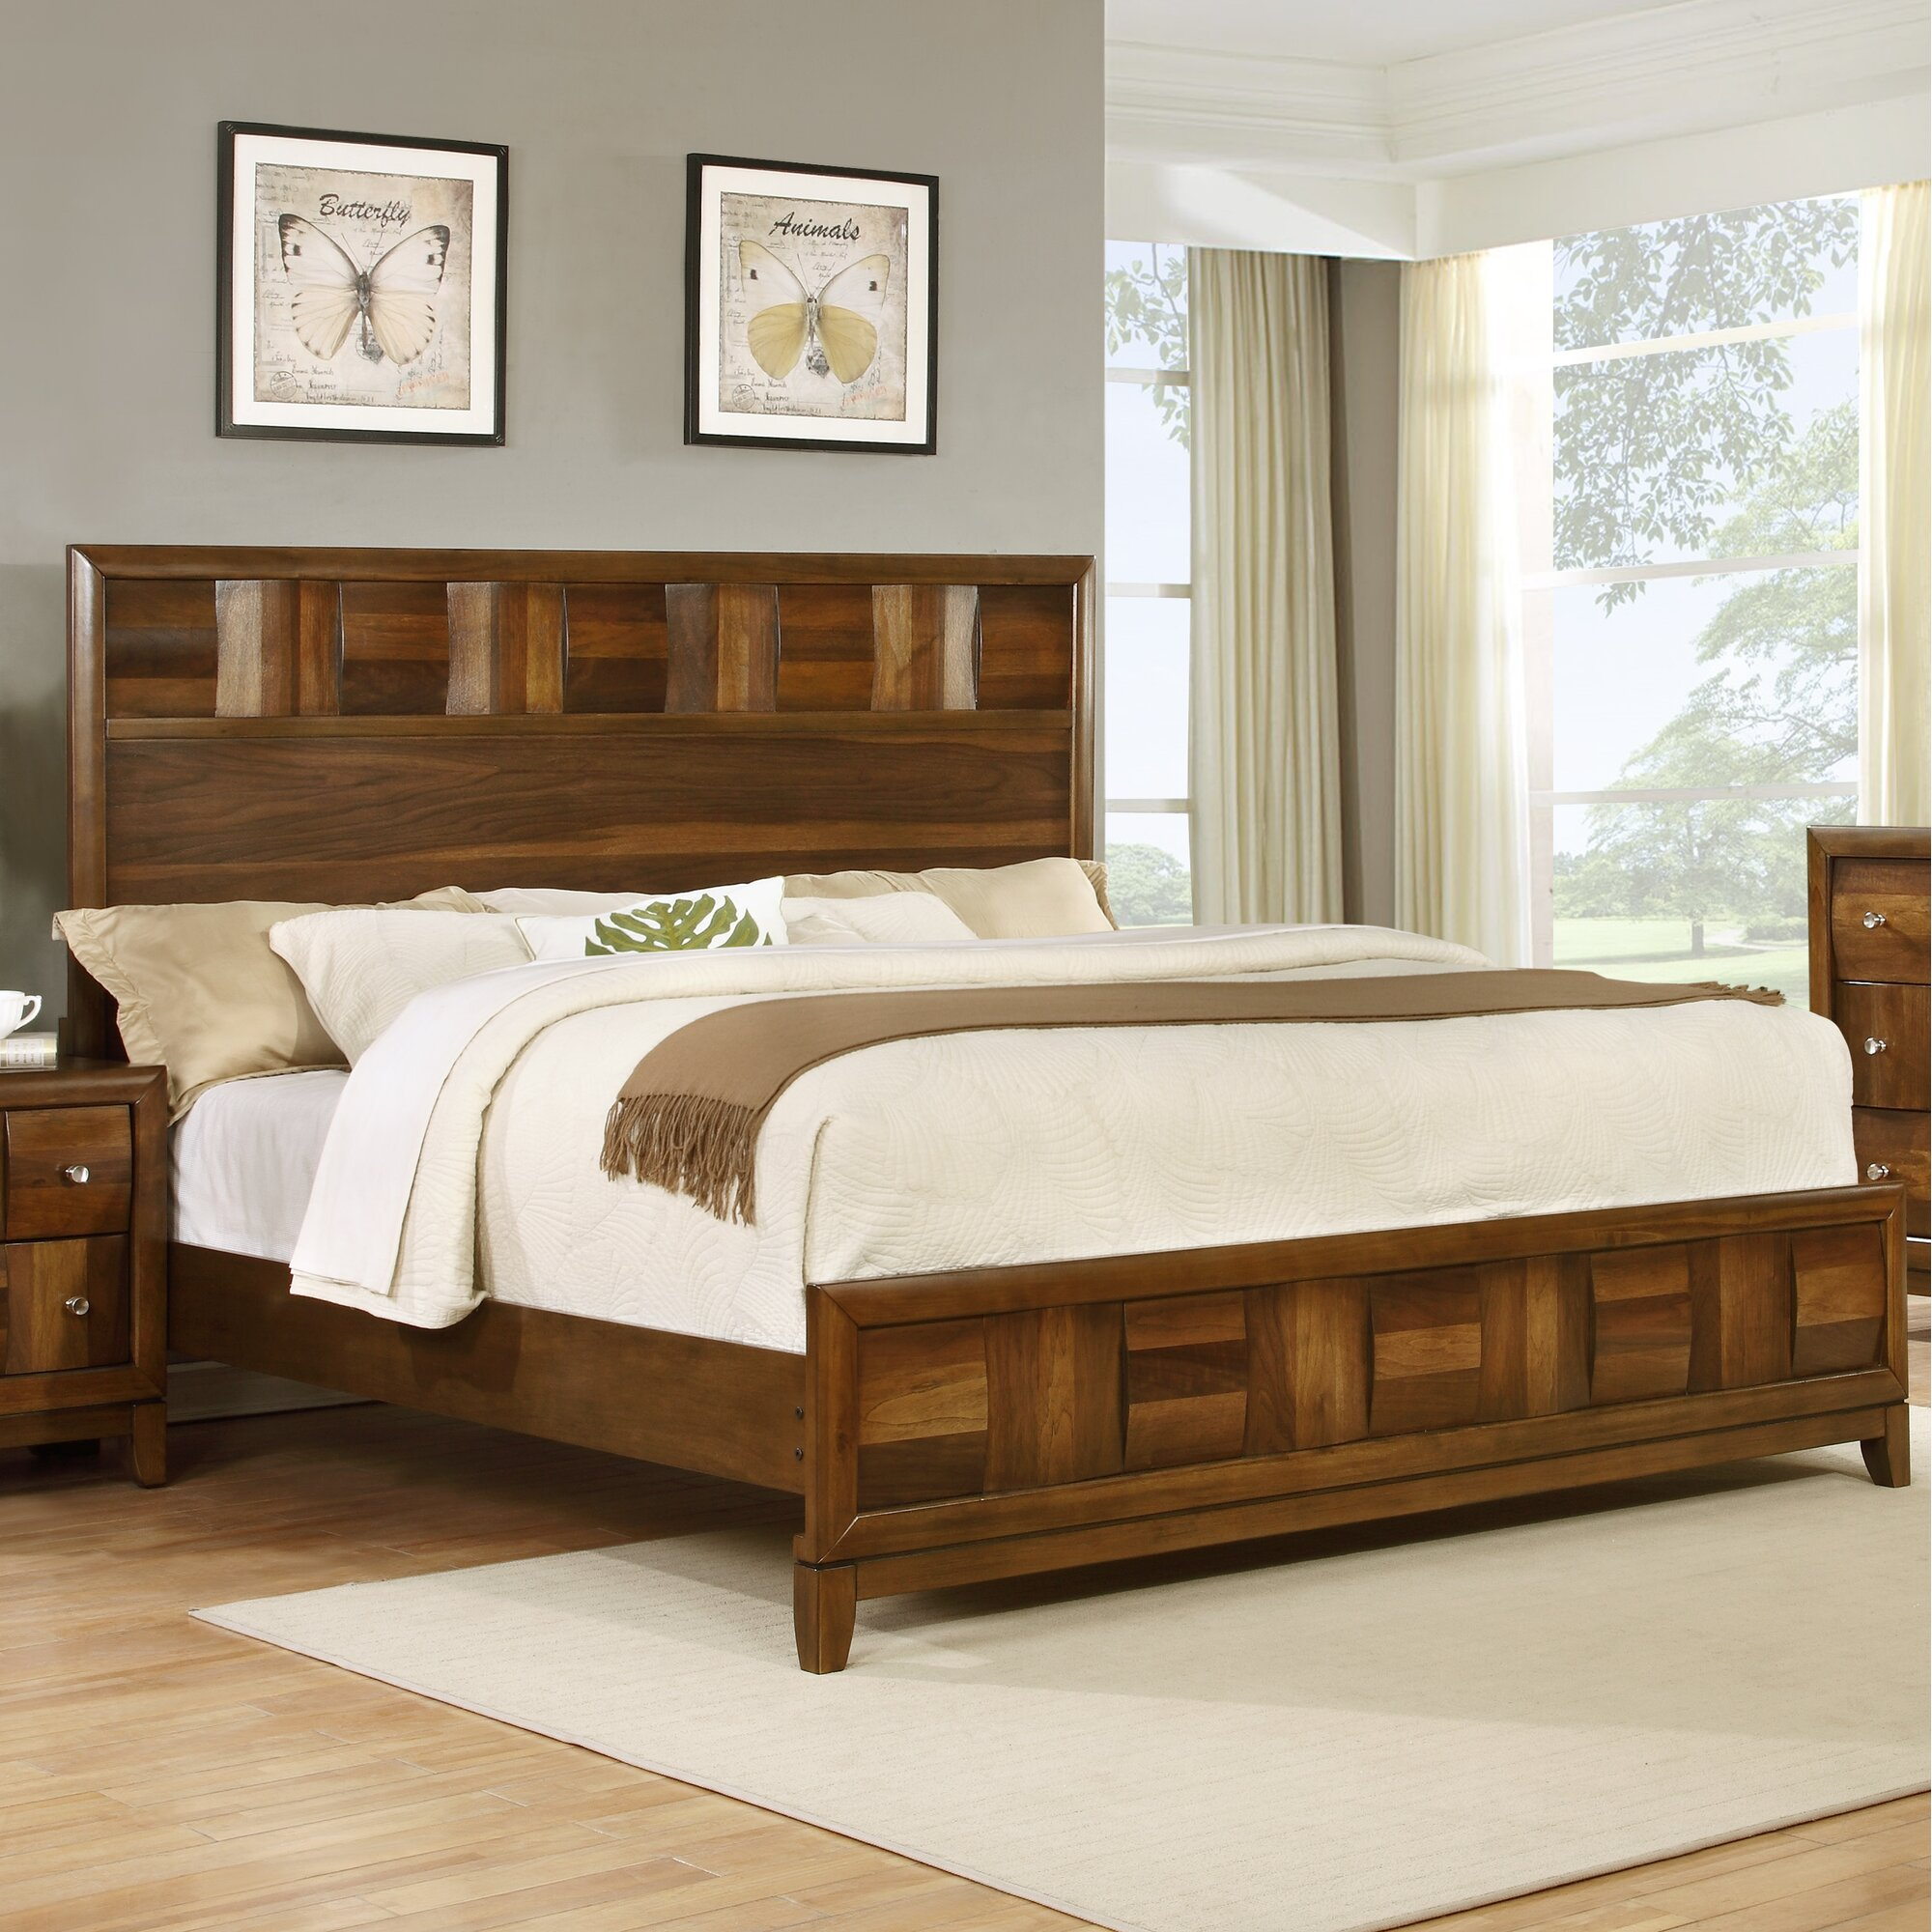 Roundhill furniture calais panel 5 piece bedroom set for Front room furniture sets